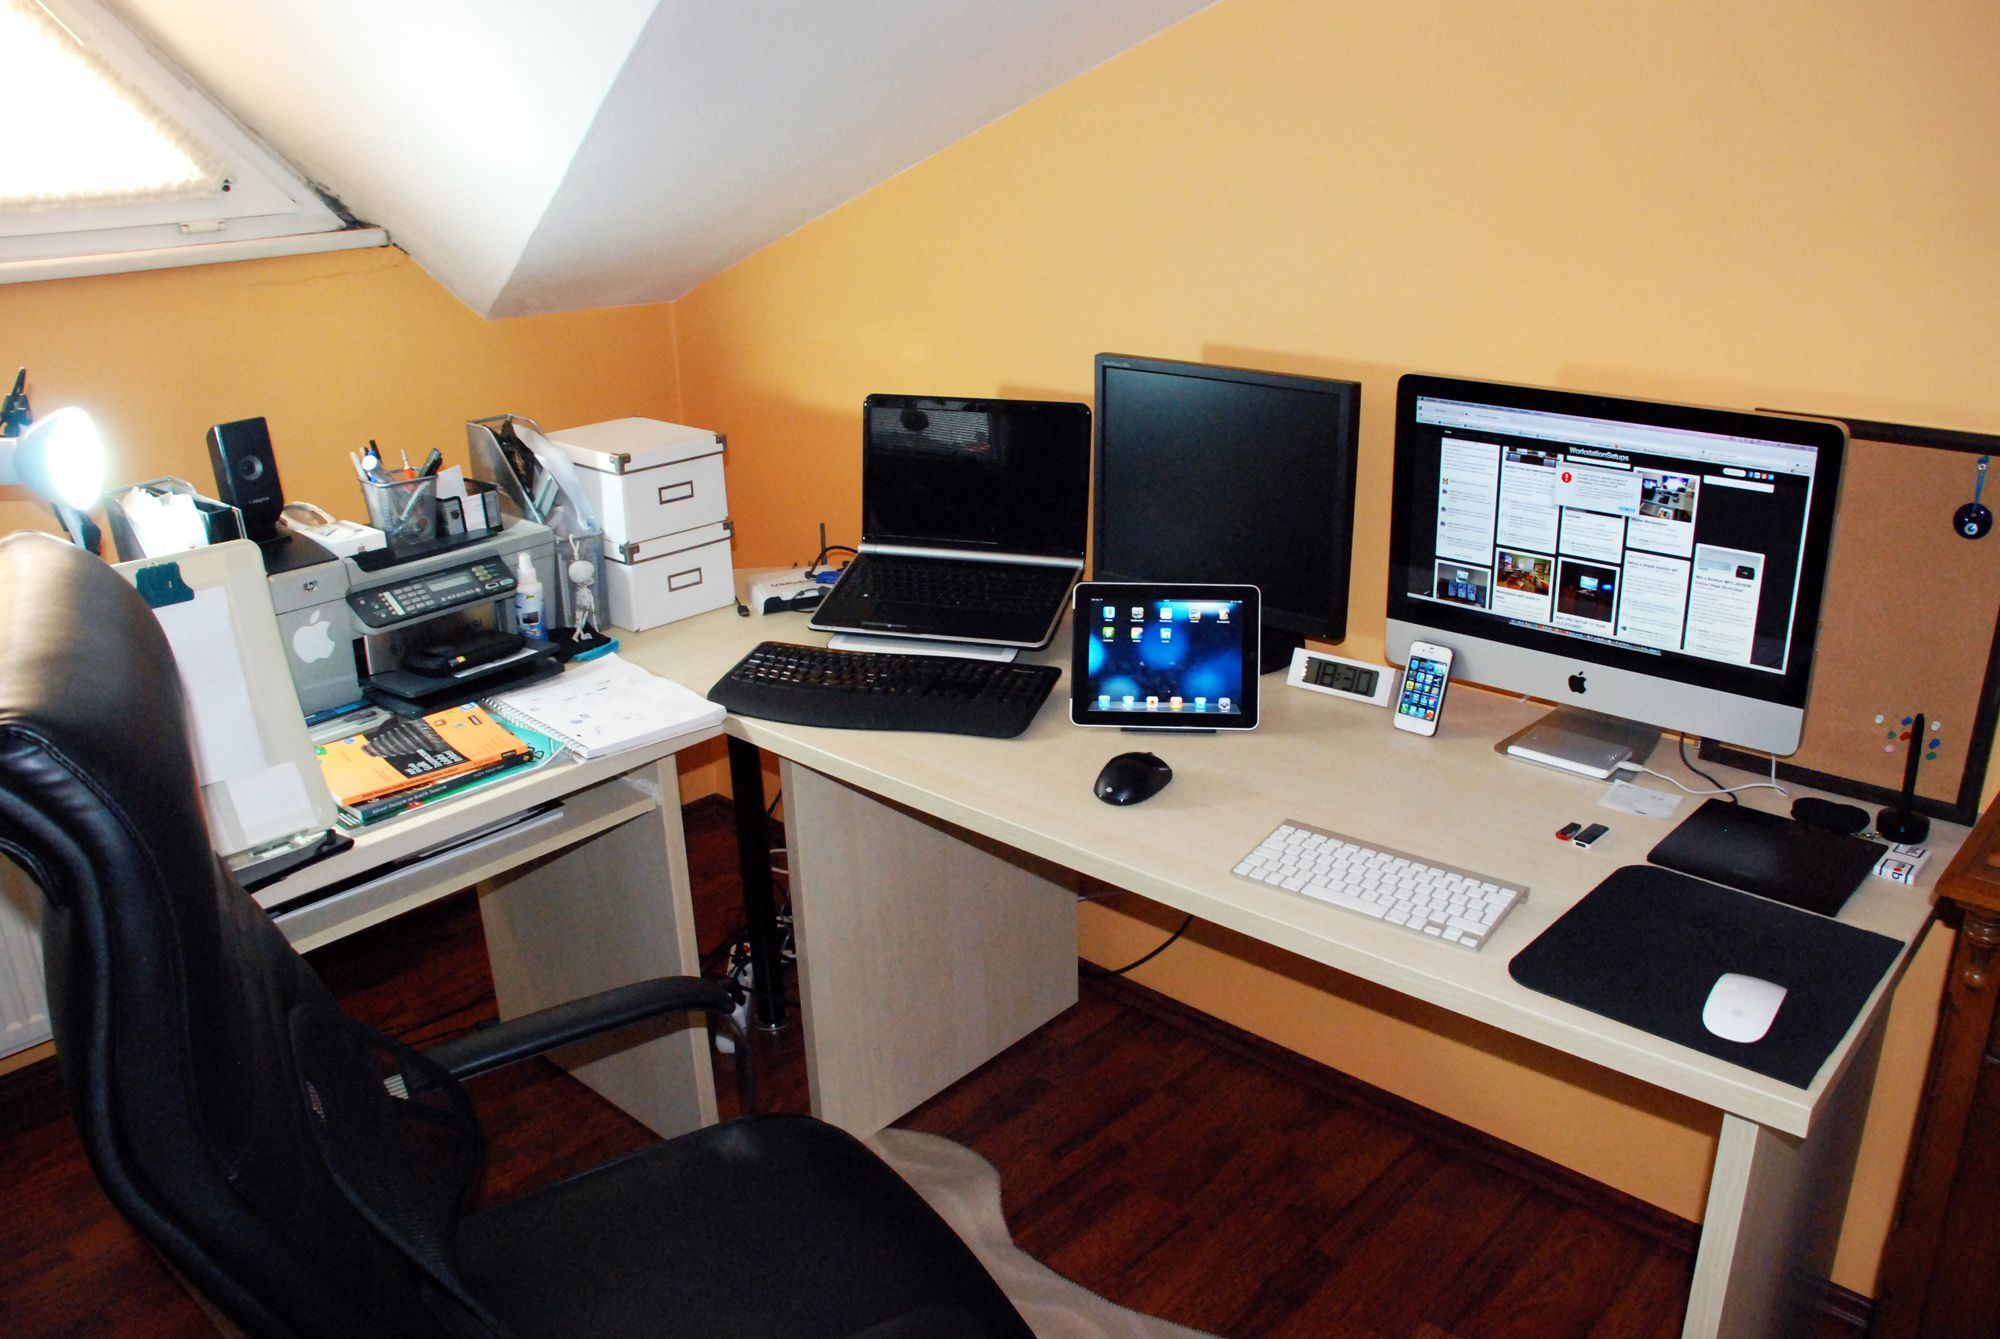 Http://www.inmagz.com Classically Designer Home Office